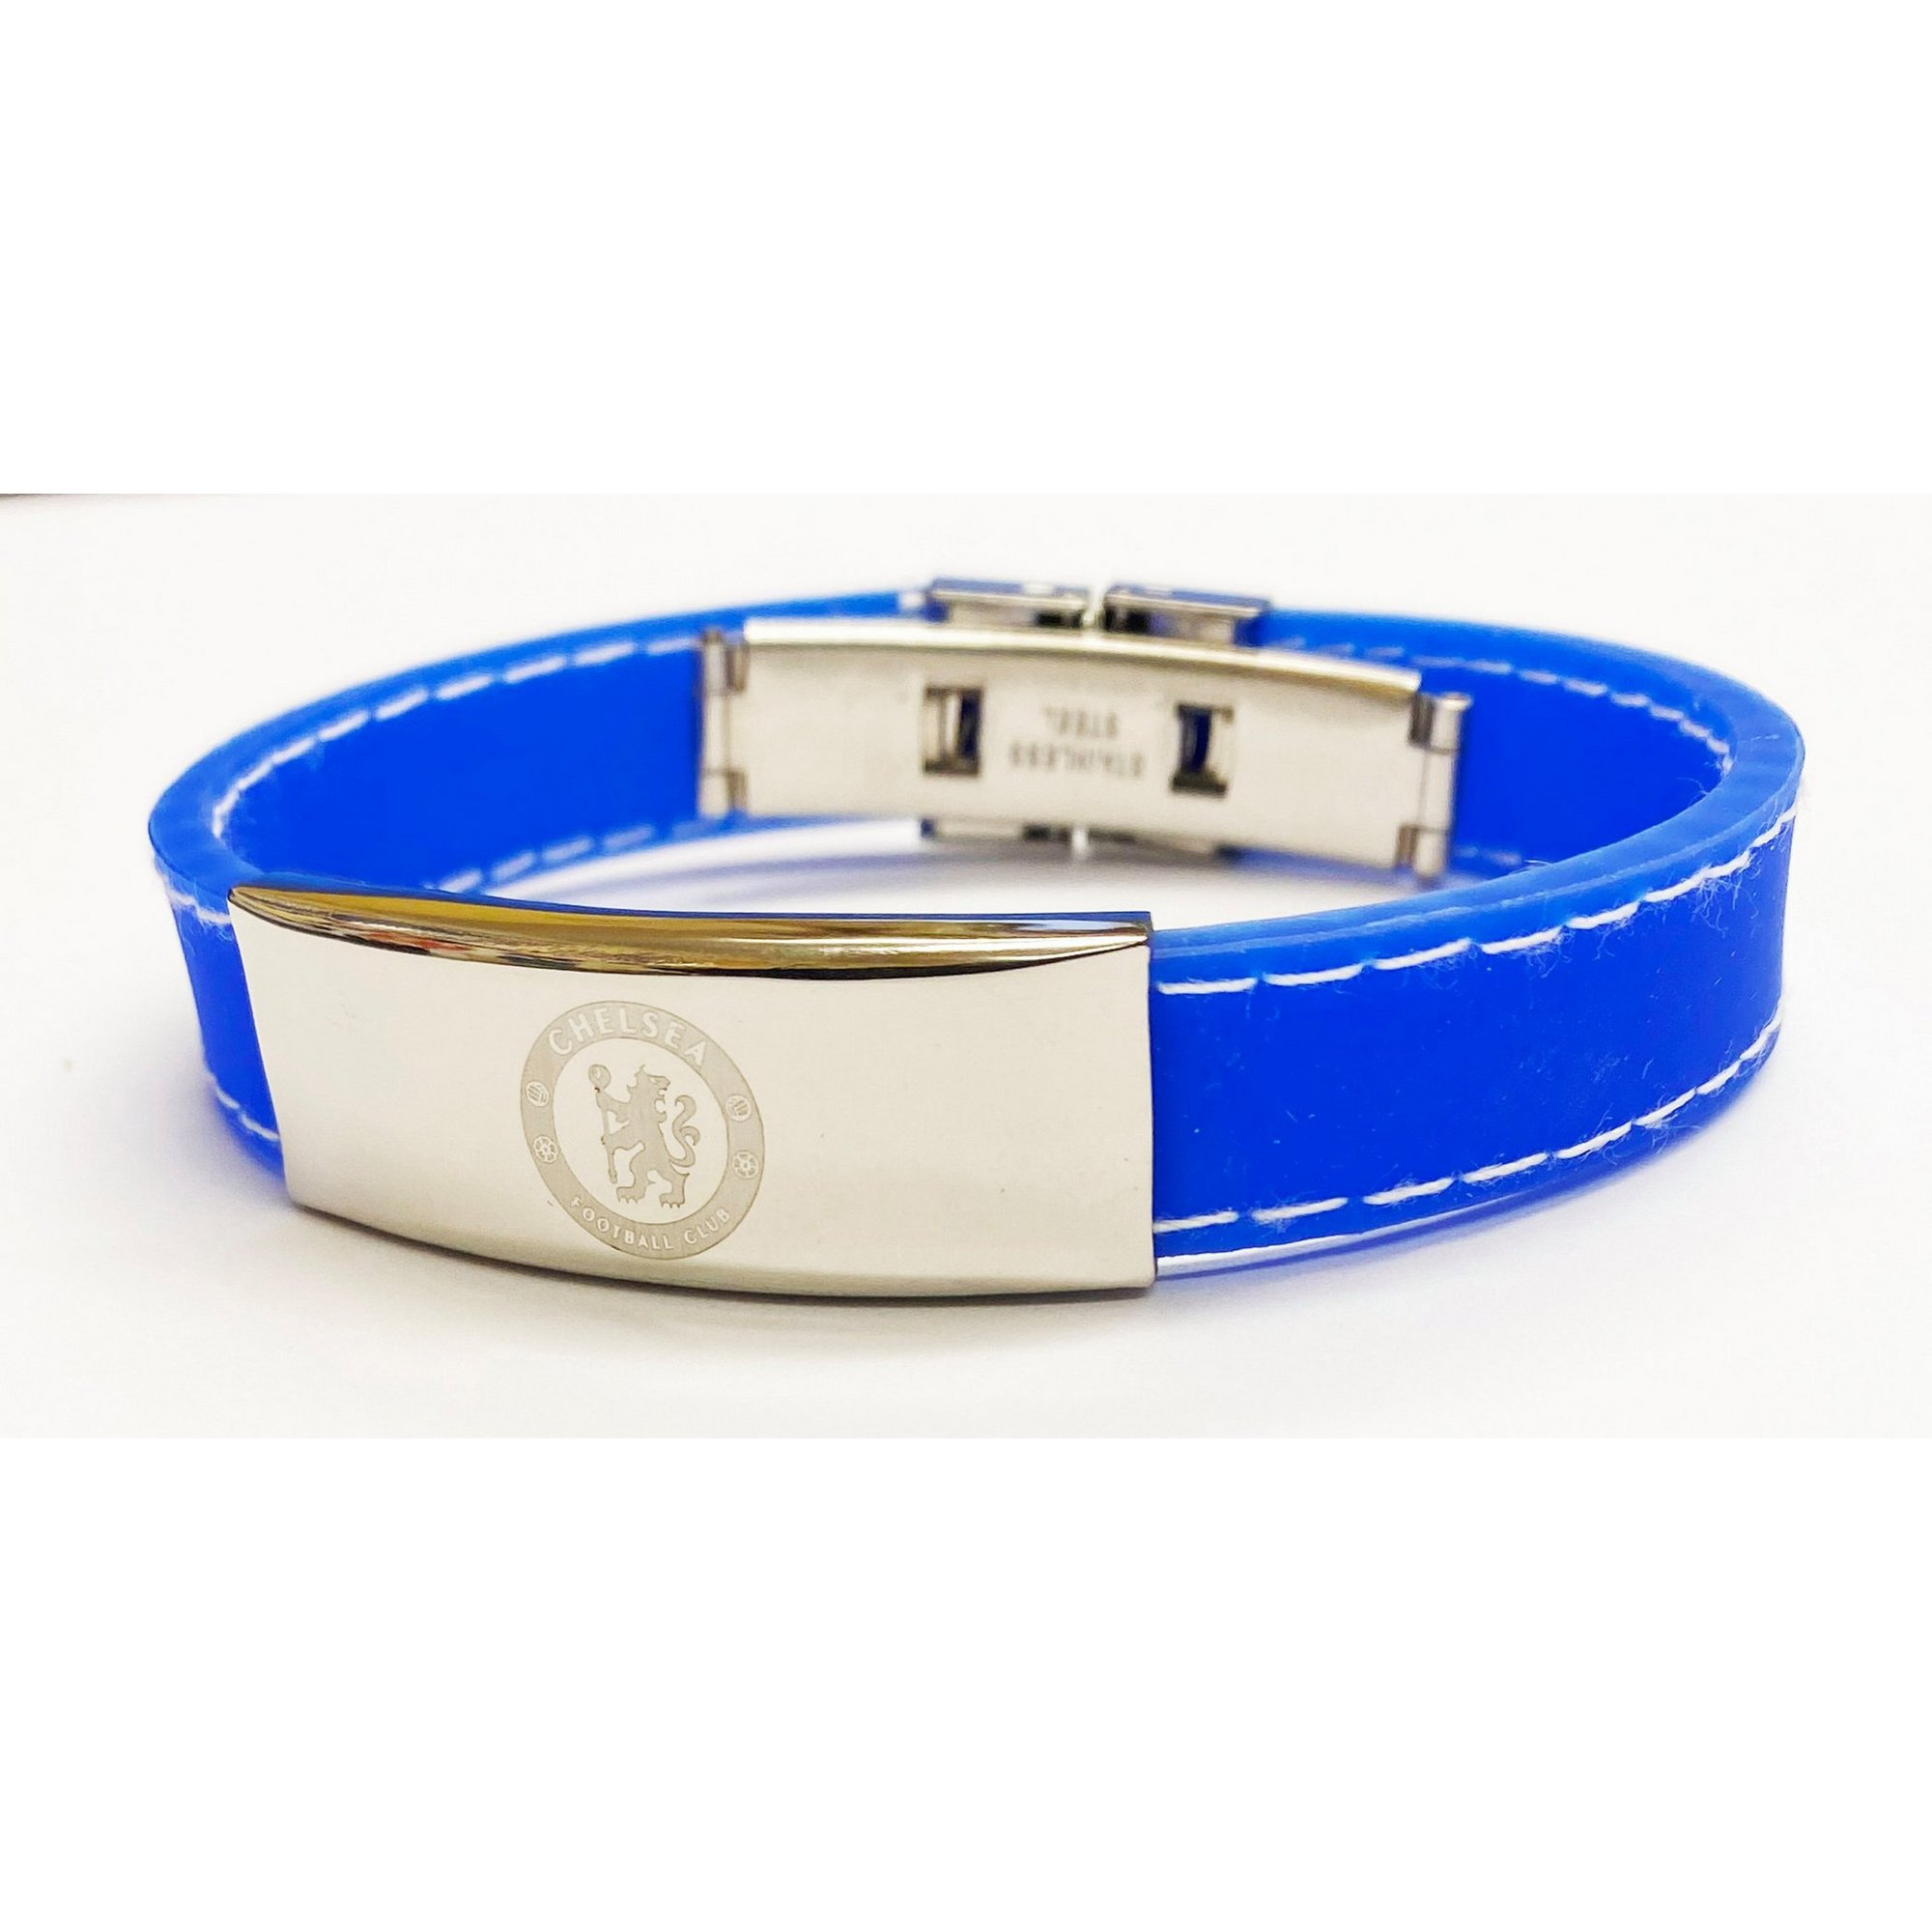 Image of Chelsea FC Stainless Steel and Rubber Stitched Design Crest Bracelet